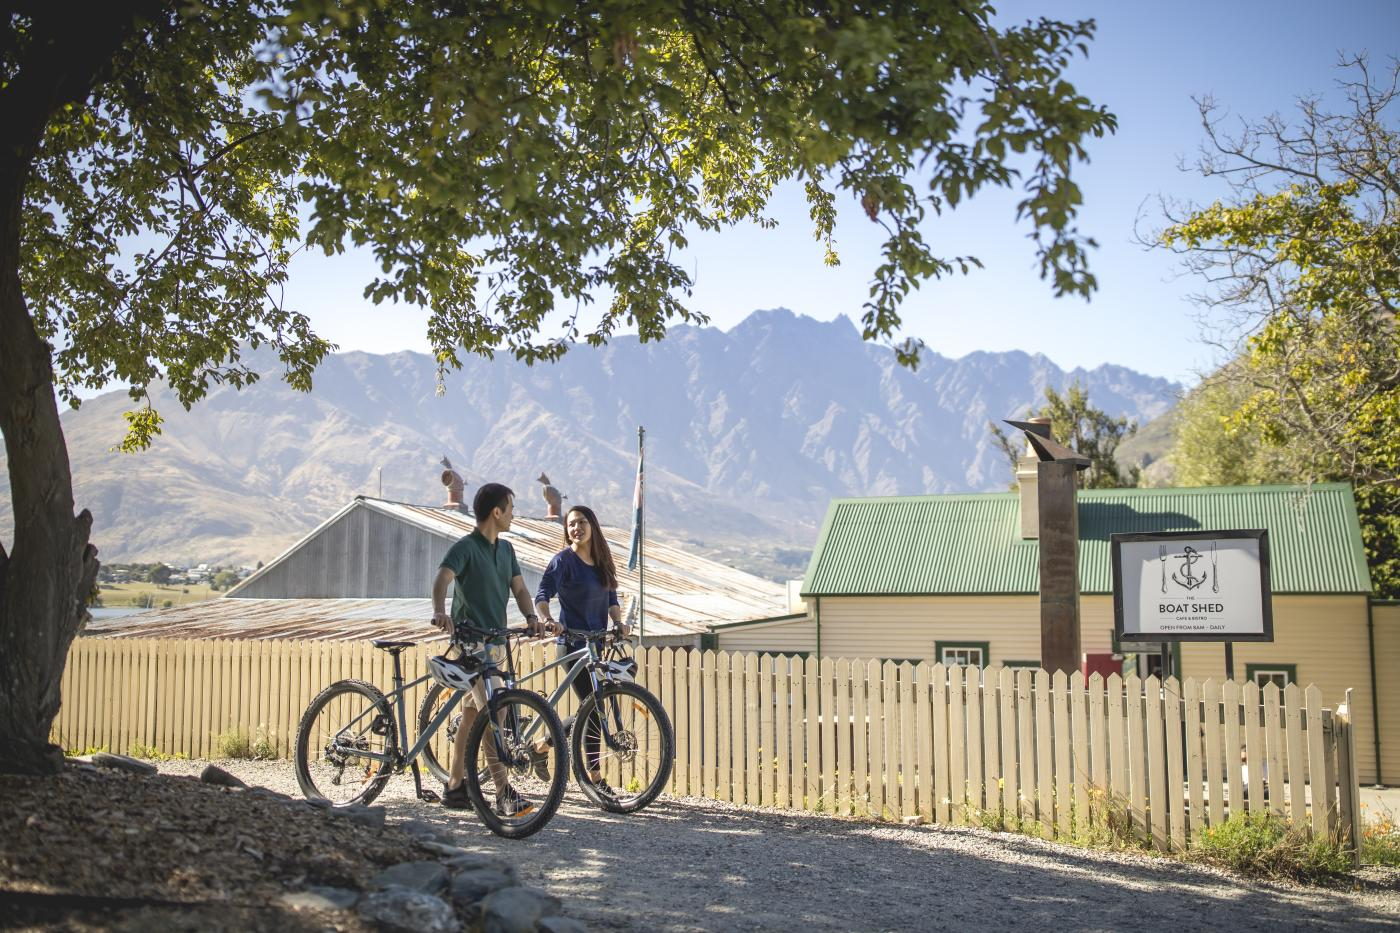 Couple biking The Queenstown Trail, by the Boat Shed Cafe